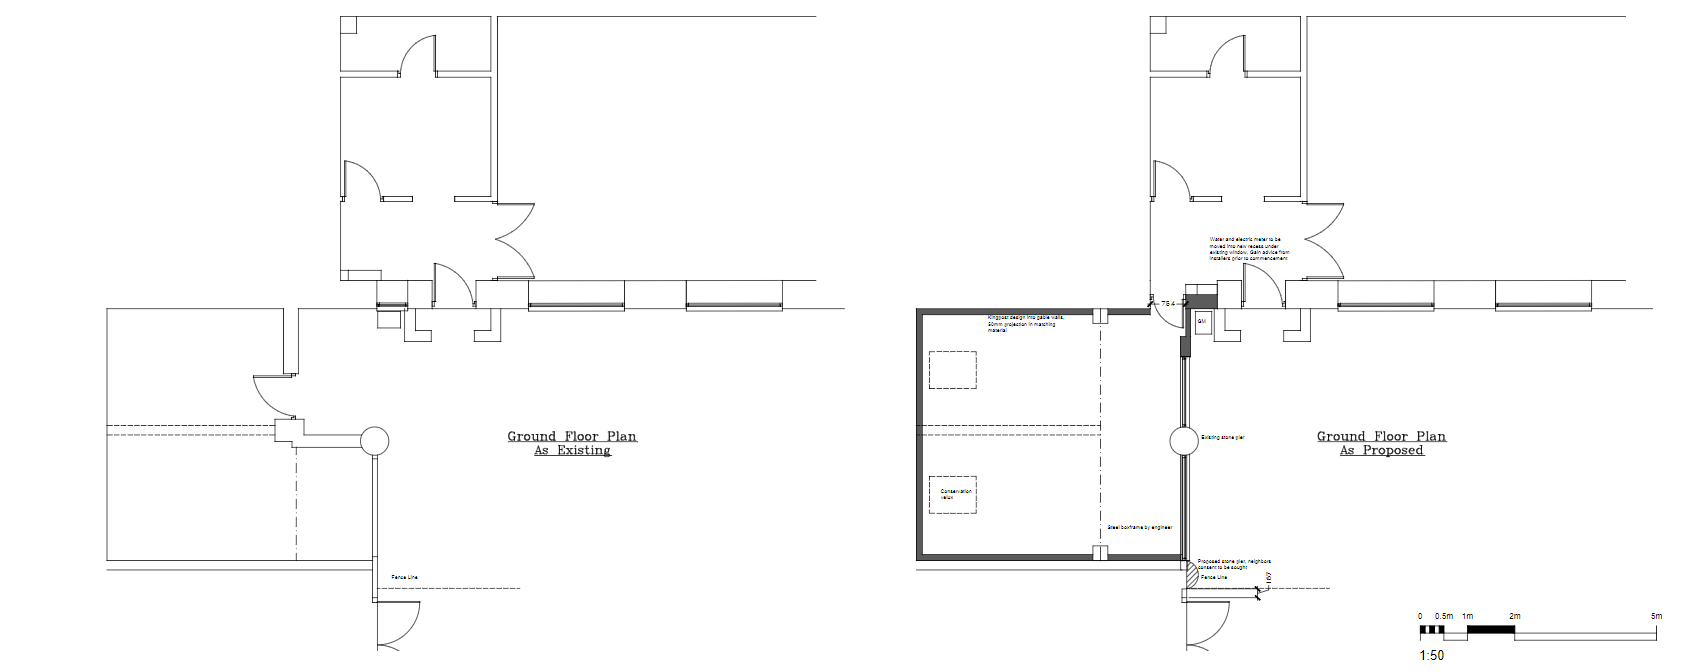 Floor plan f barn conversion done by CK architectural